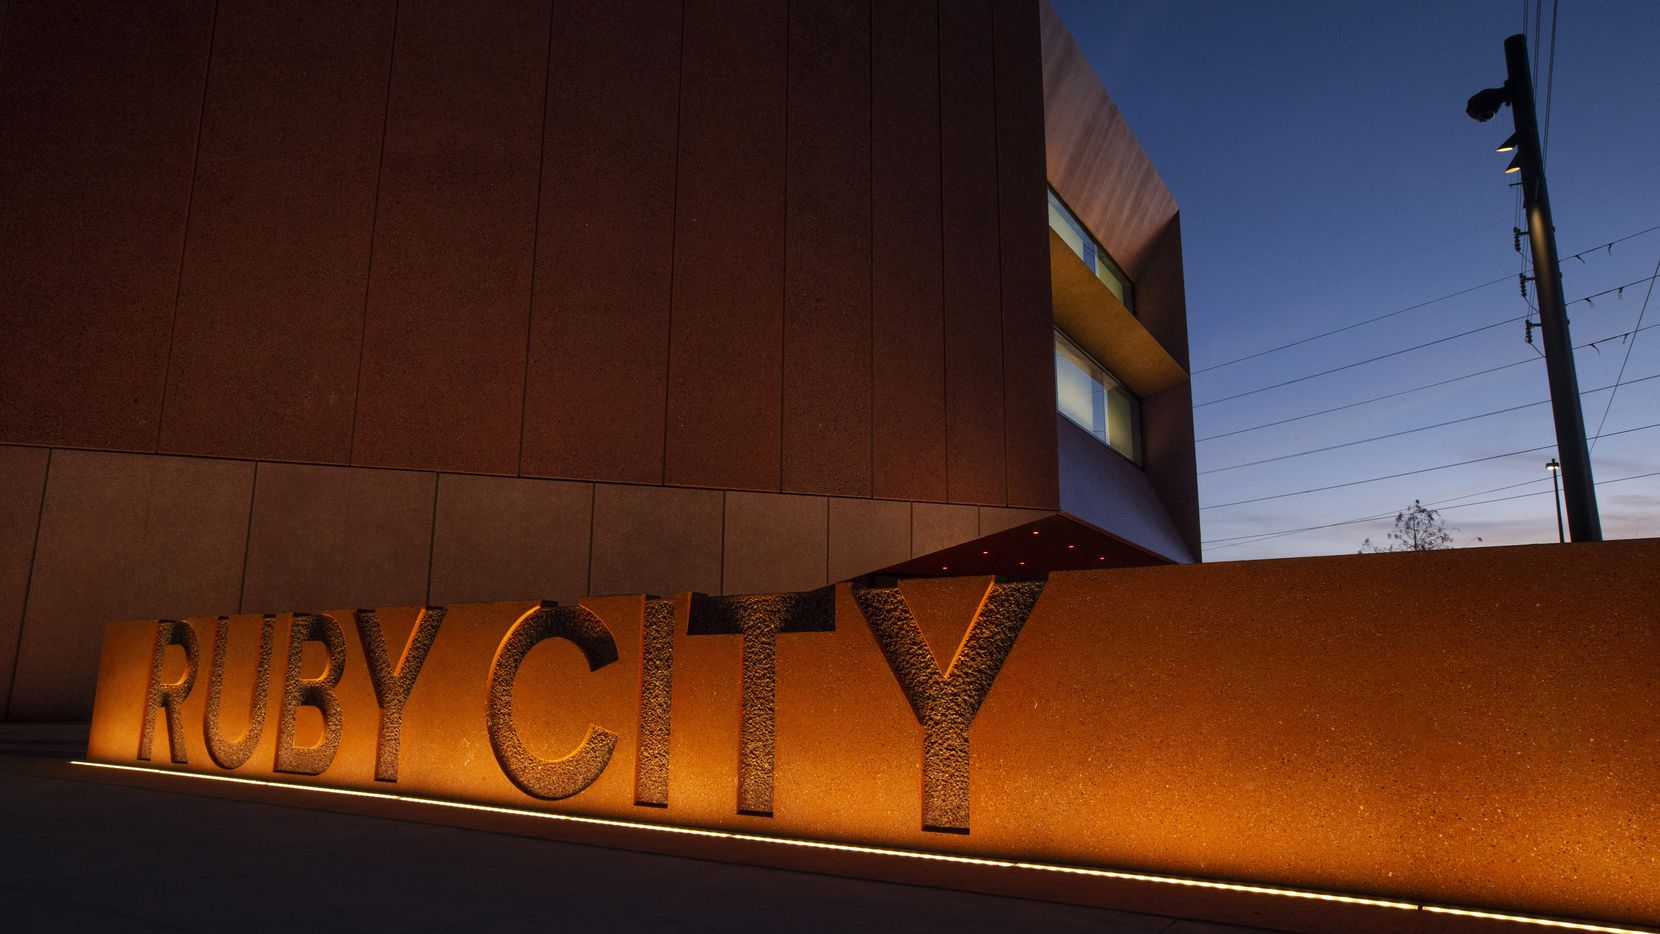 The Ruby City art center in San Antonio was designed by British architect David Adjaye and envisioned by the late Linda Pace.